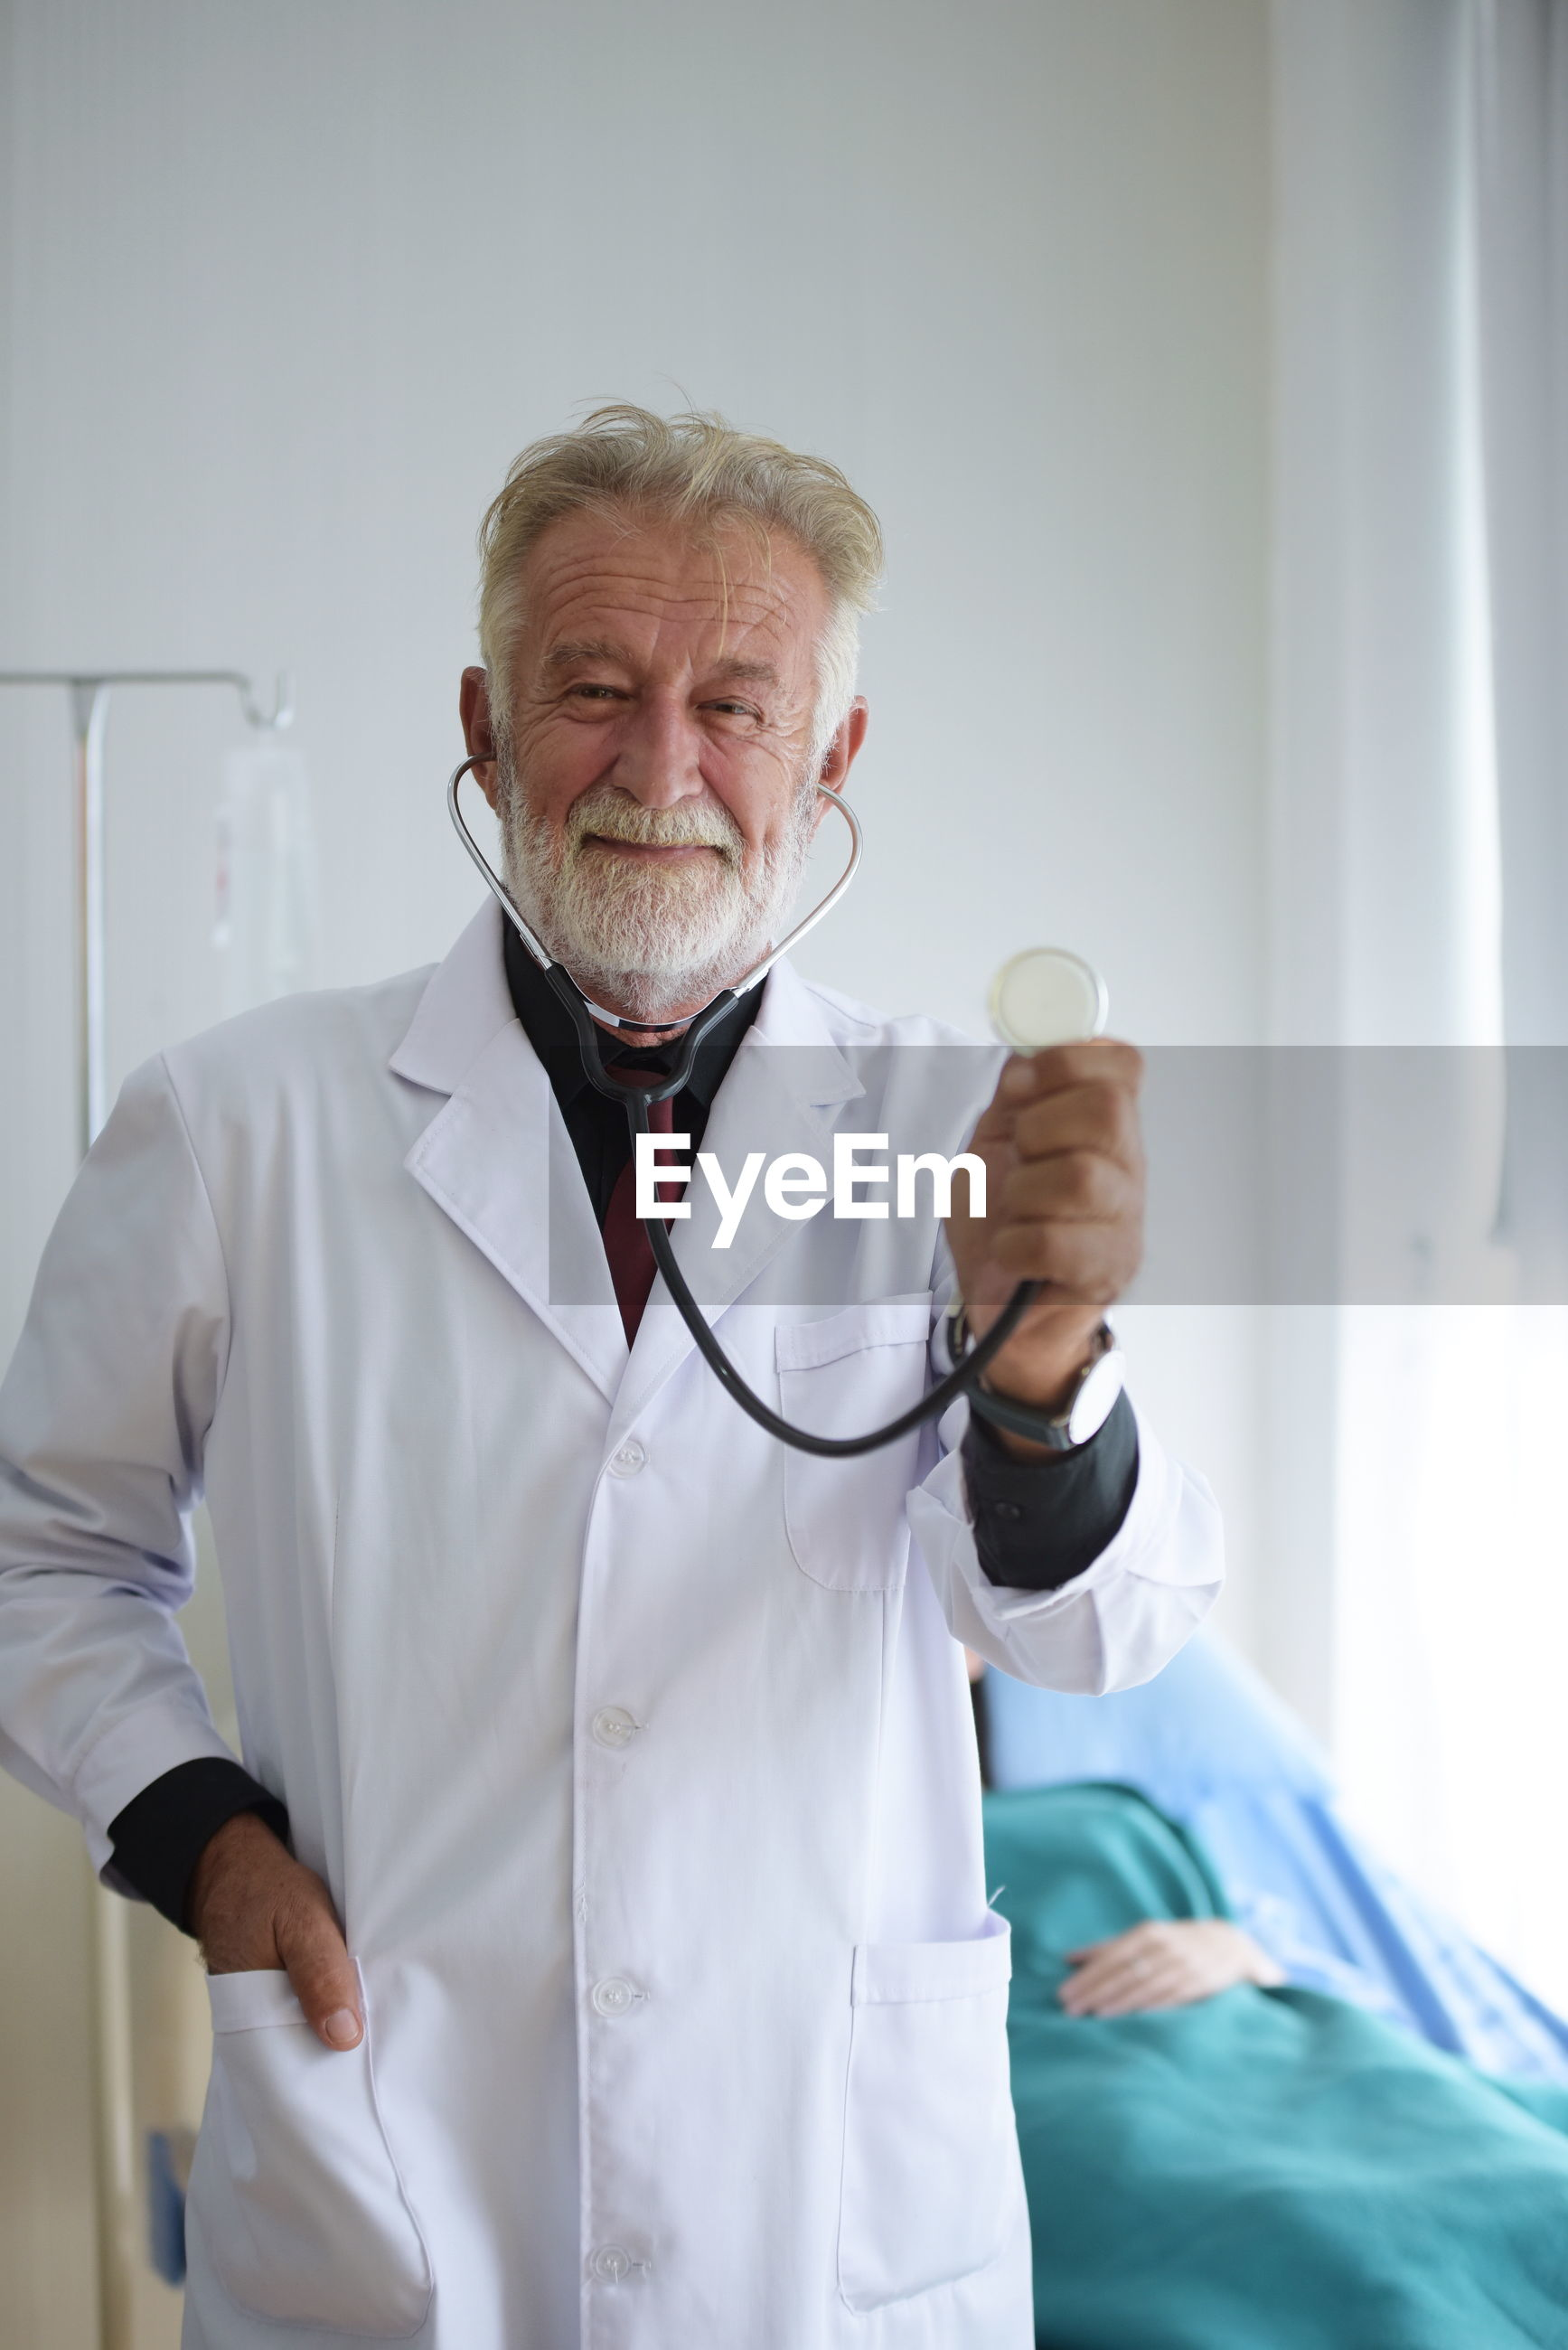 Portrait of doctor holding stethoscope at hospital